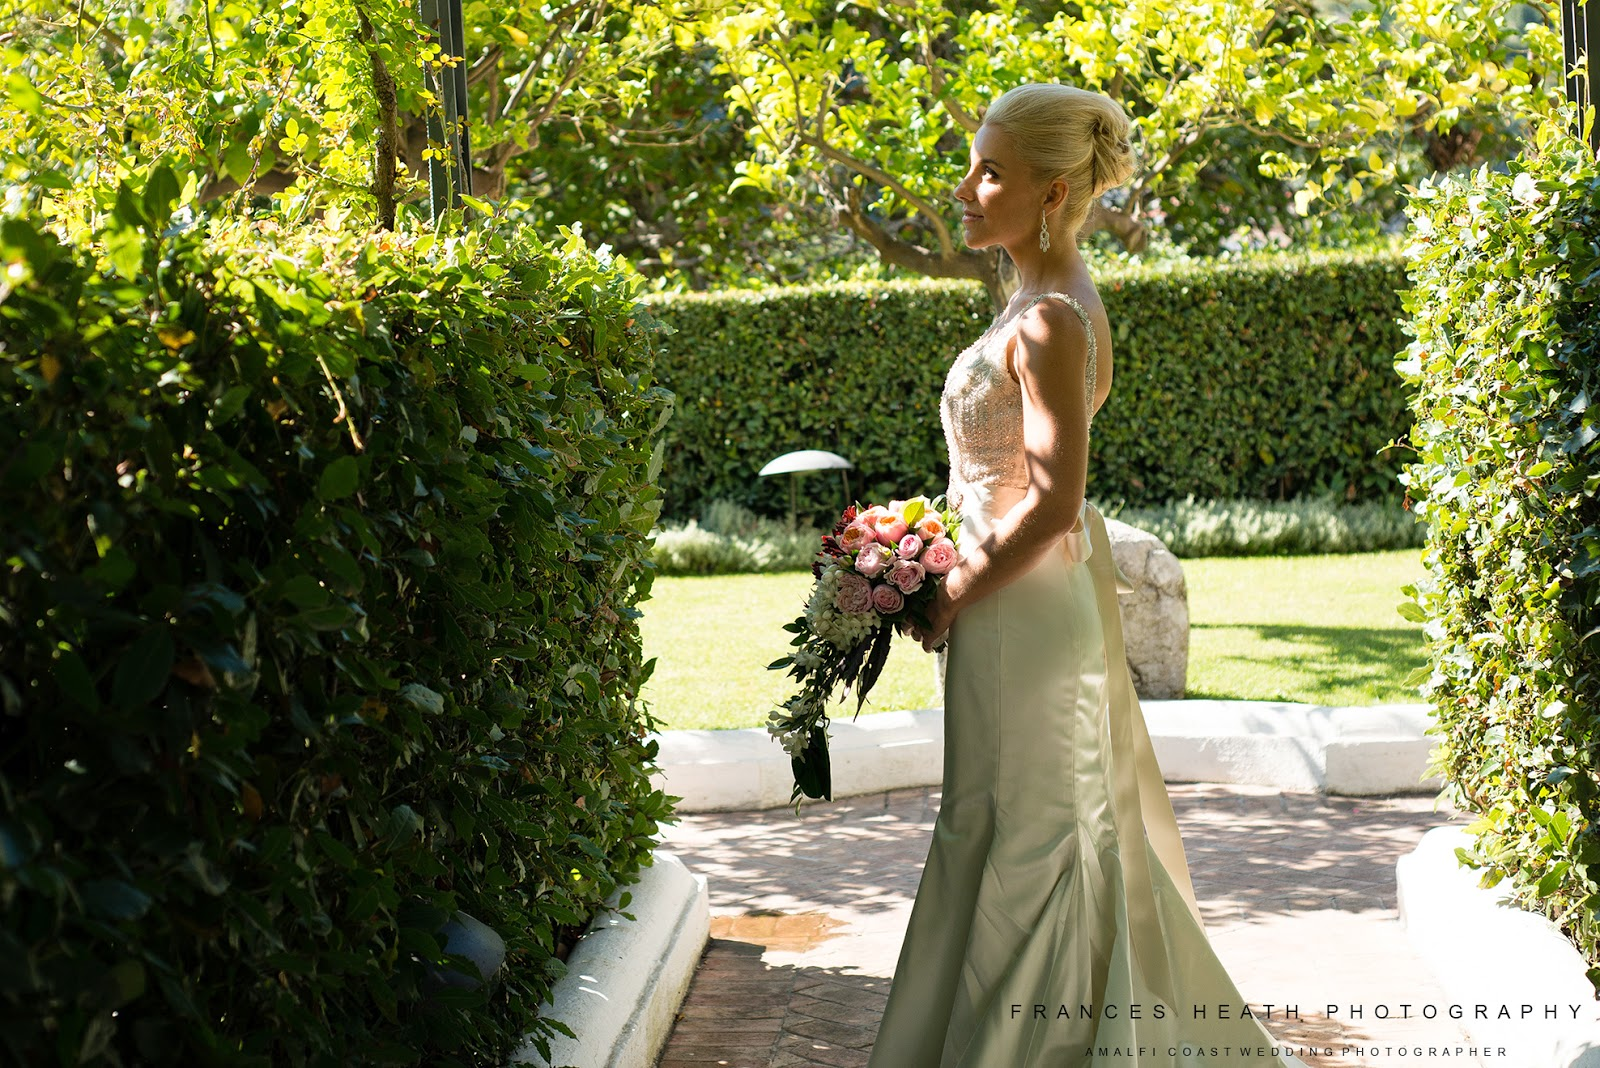 Bridal portrait at Hotel Caruso in Ravello